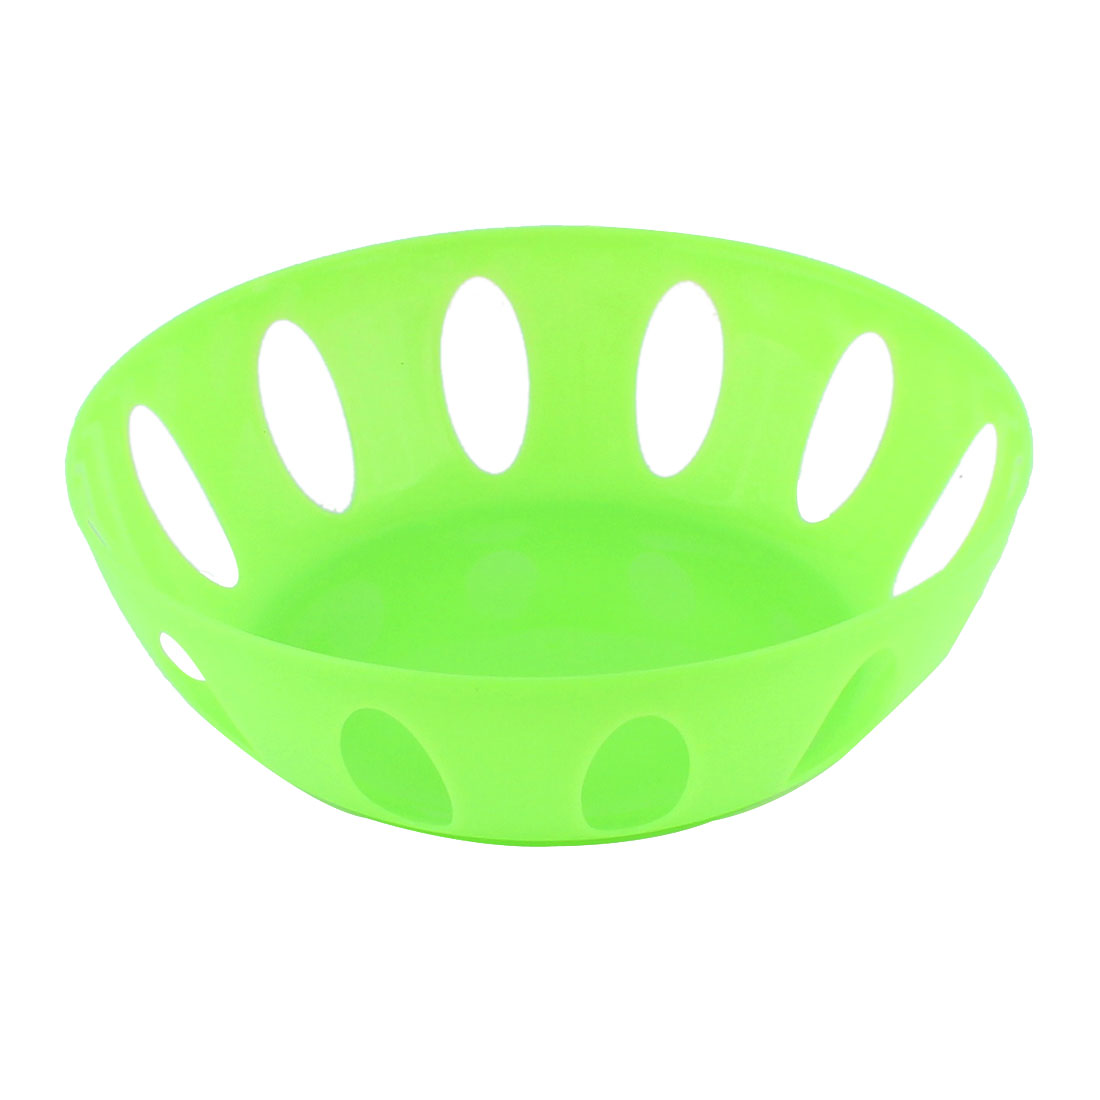 Home Living Room Kitchenware Plastic Round Shaped Hollow Out Fruit Plate Basket Green